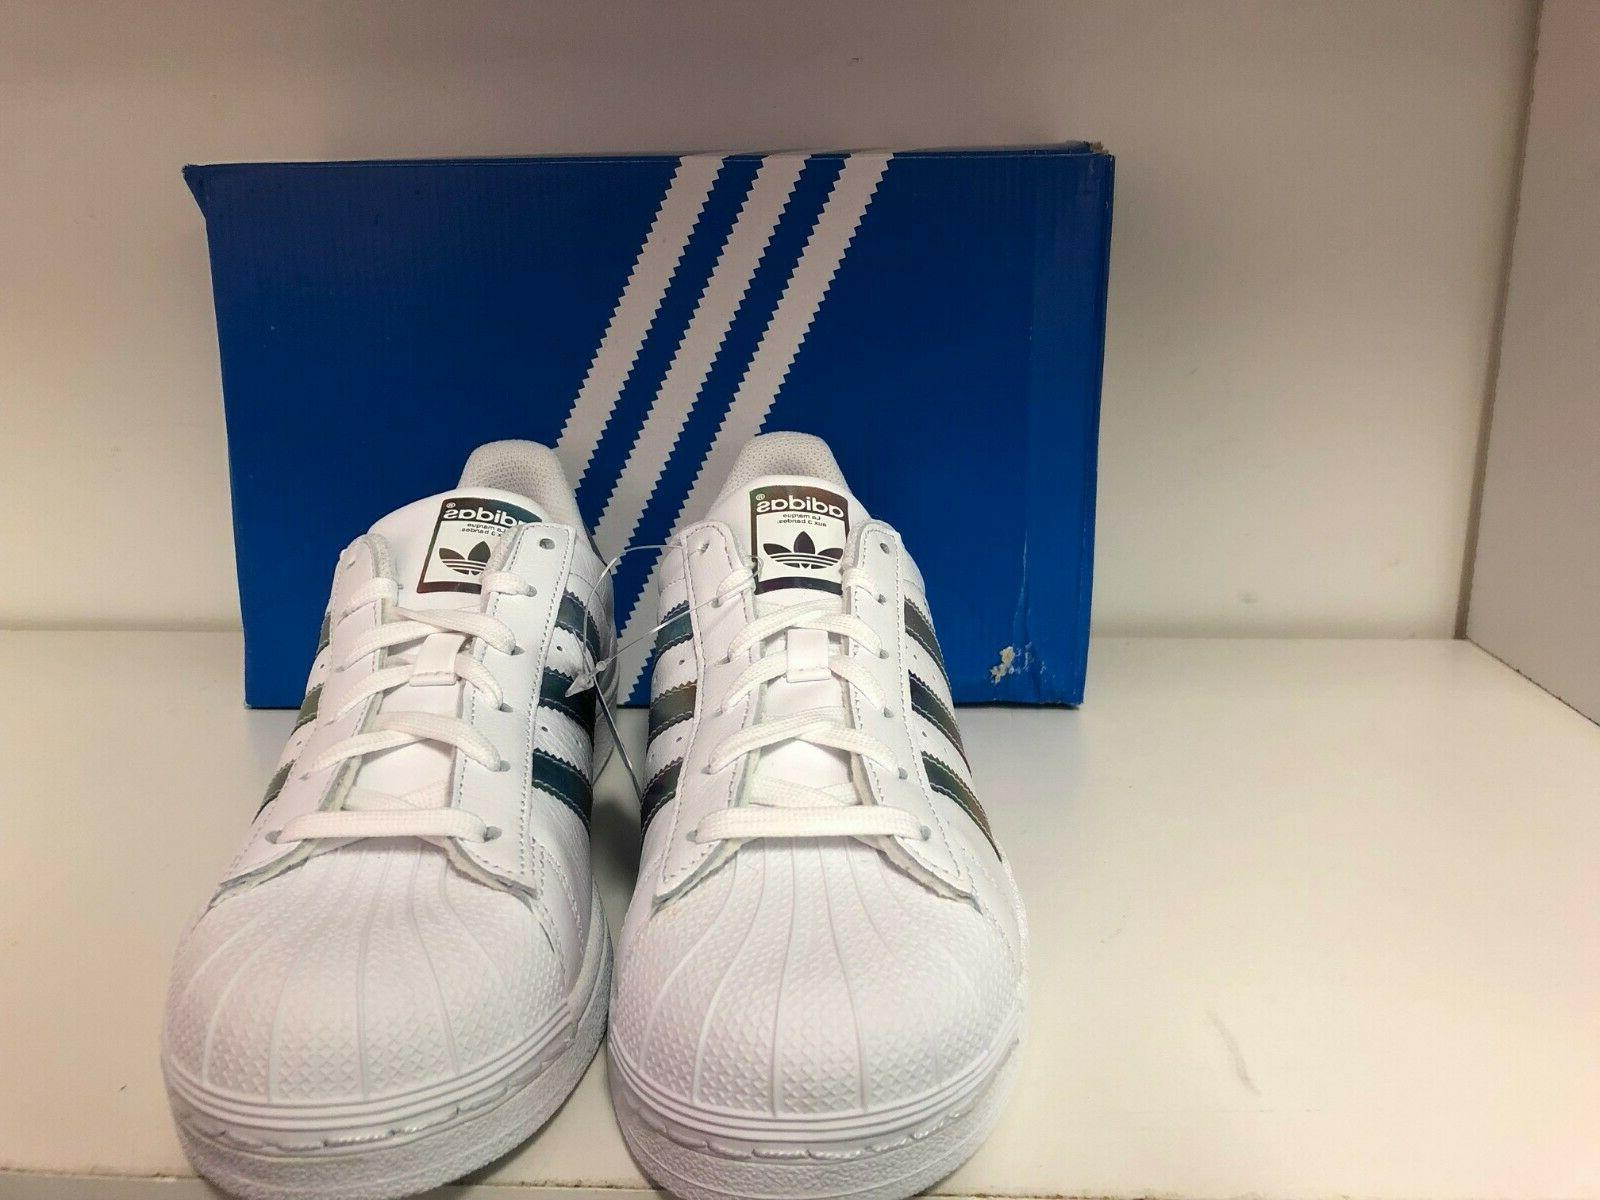 Adidas Shell Toe Kids Size 7 Shoes CQ0747